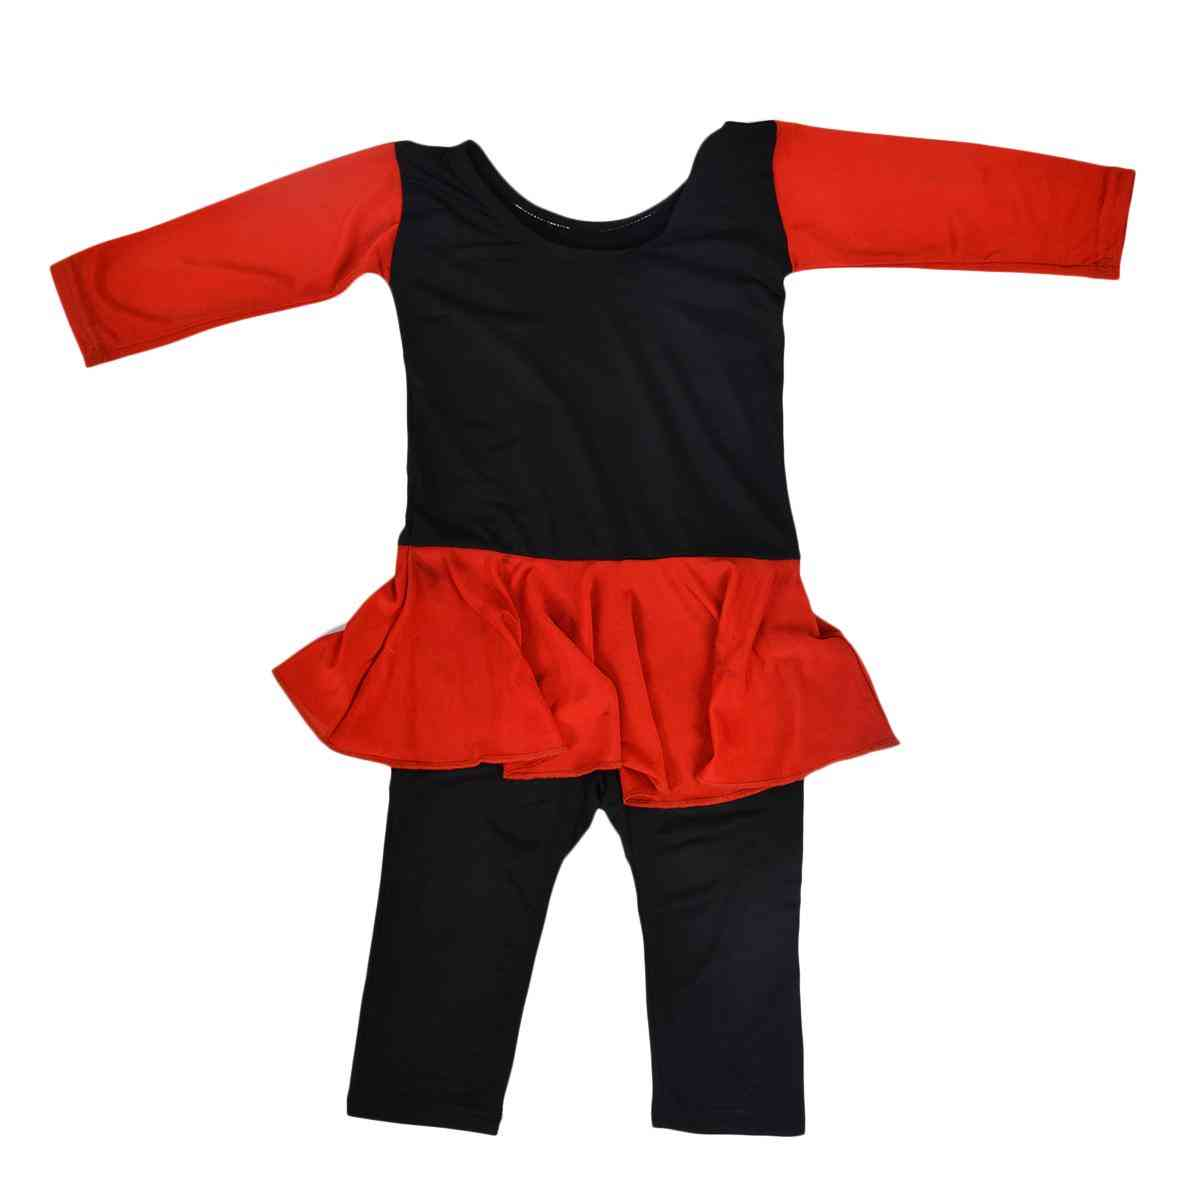 Good Quality Baby Frill (Baby Swimsuit)